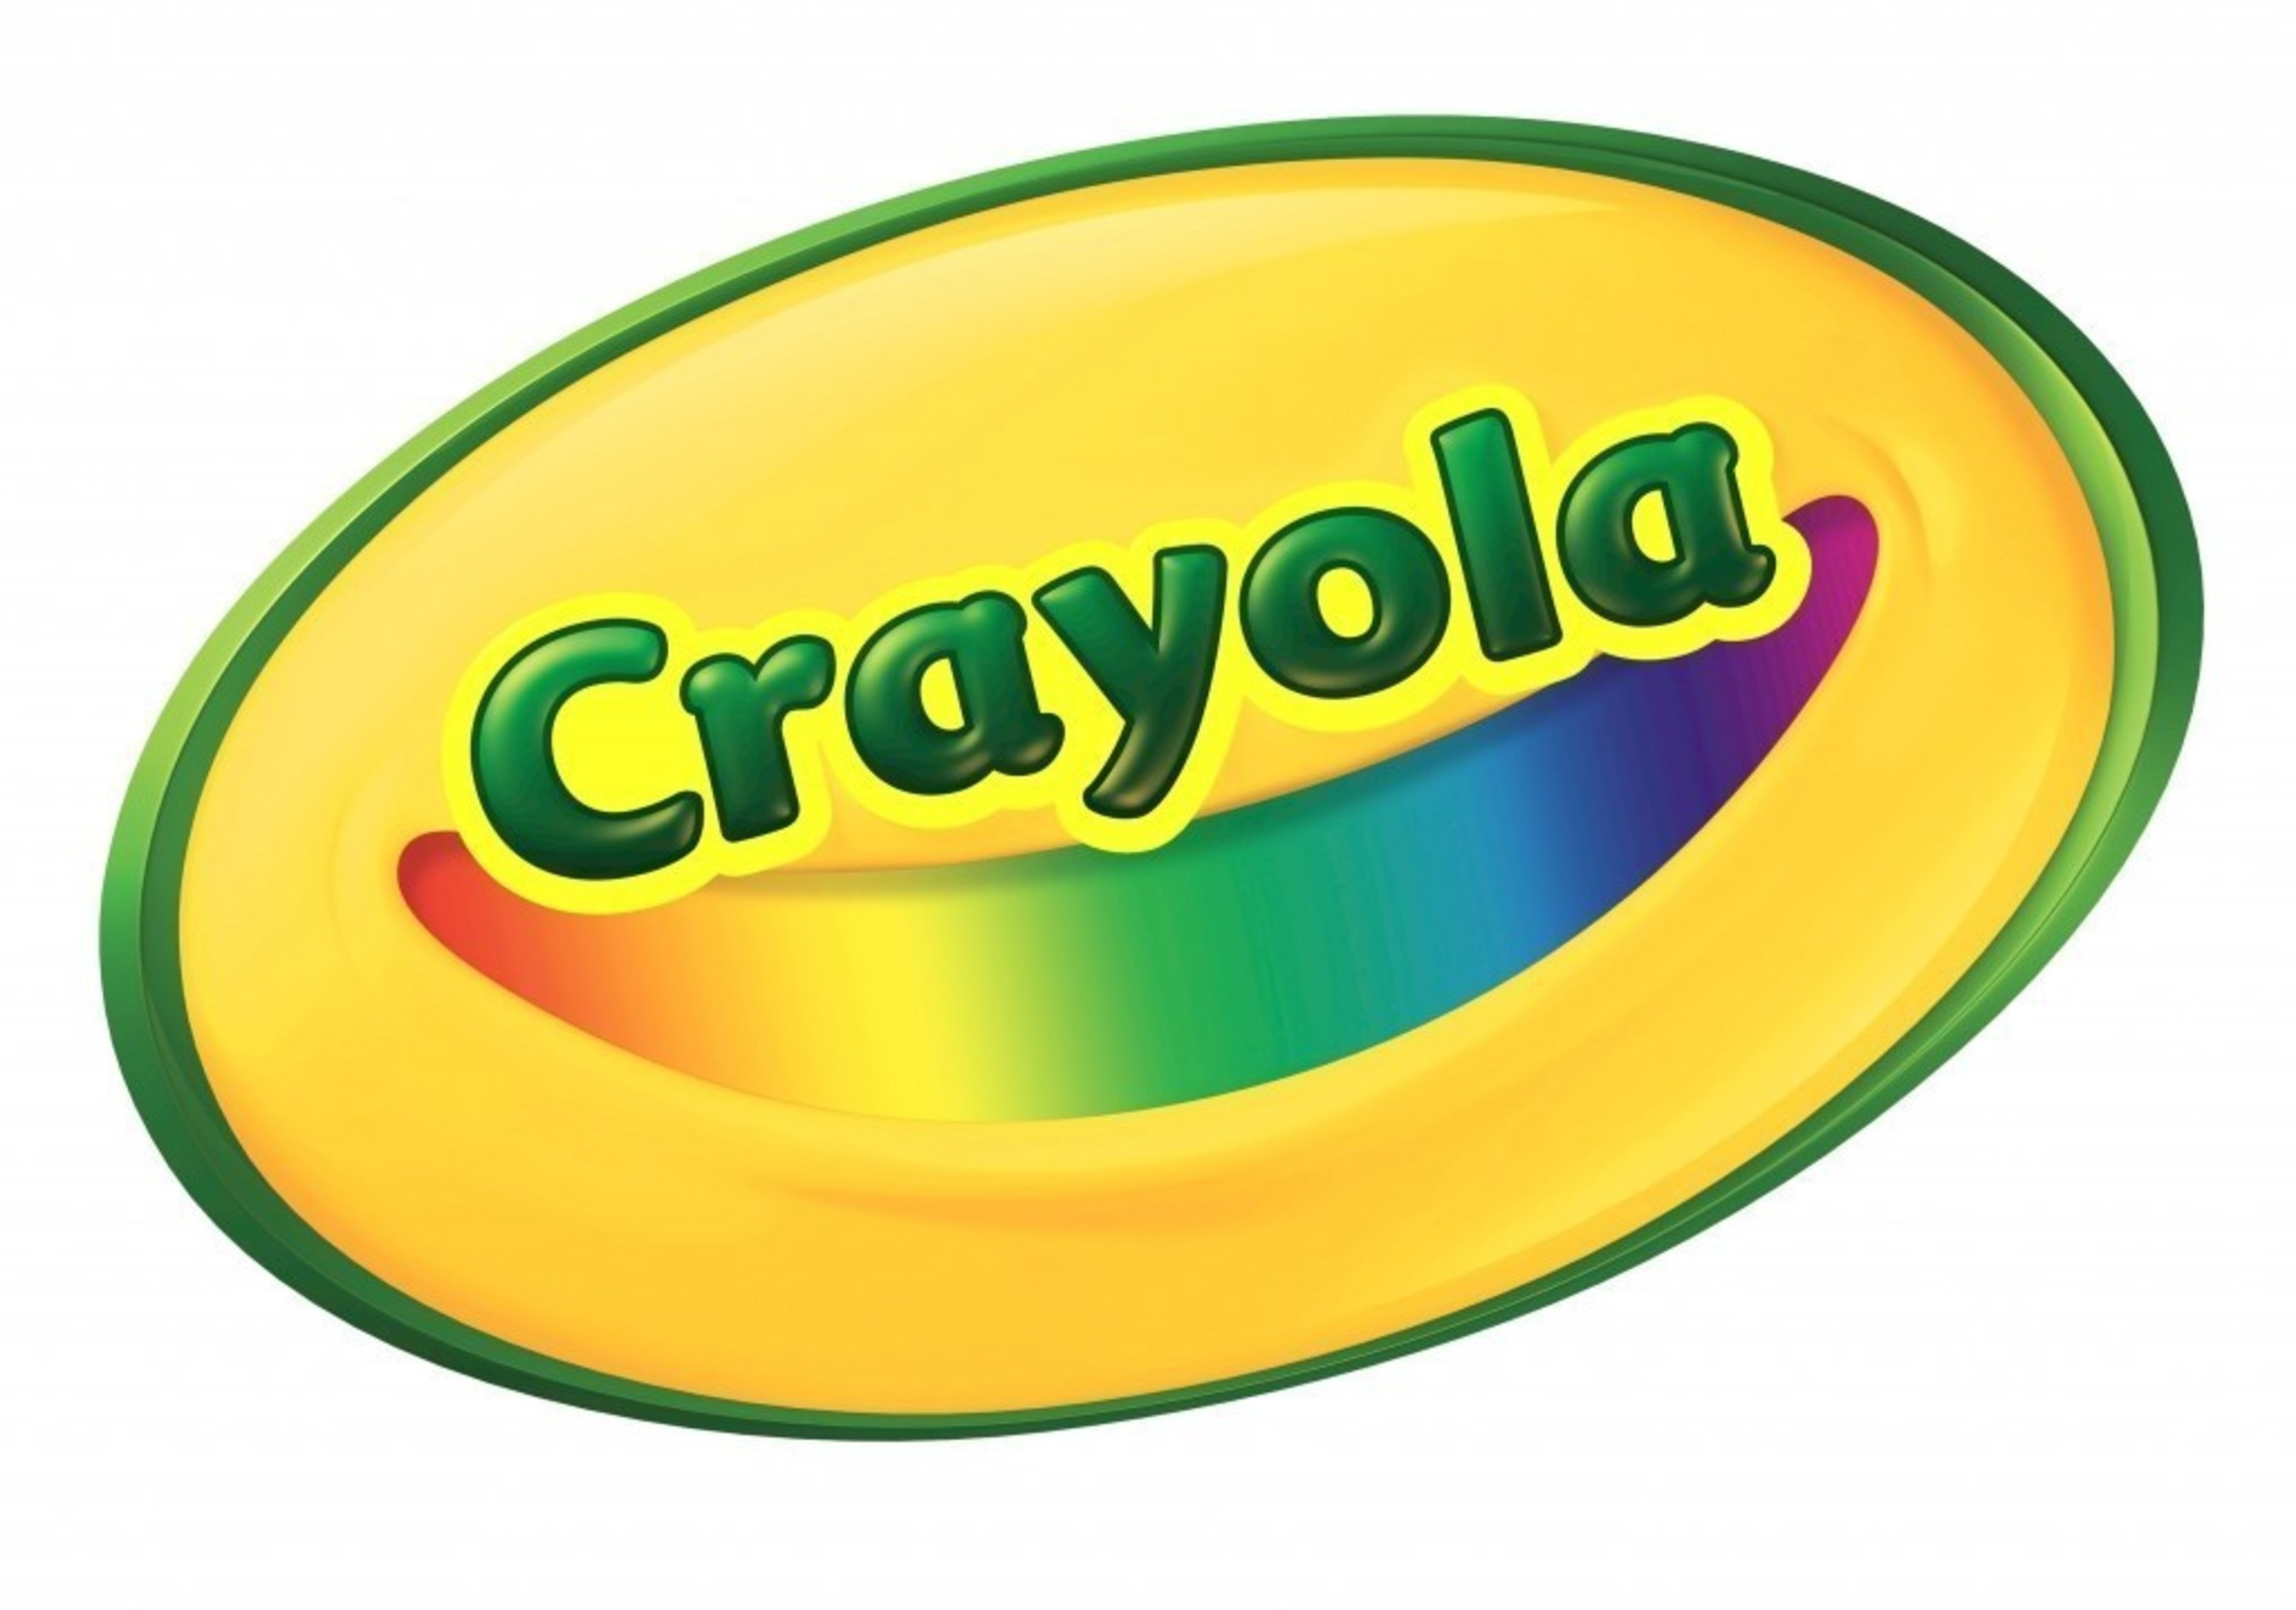 Crayola Launches Animated Characters for the First Time in its History